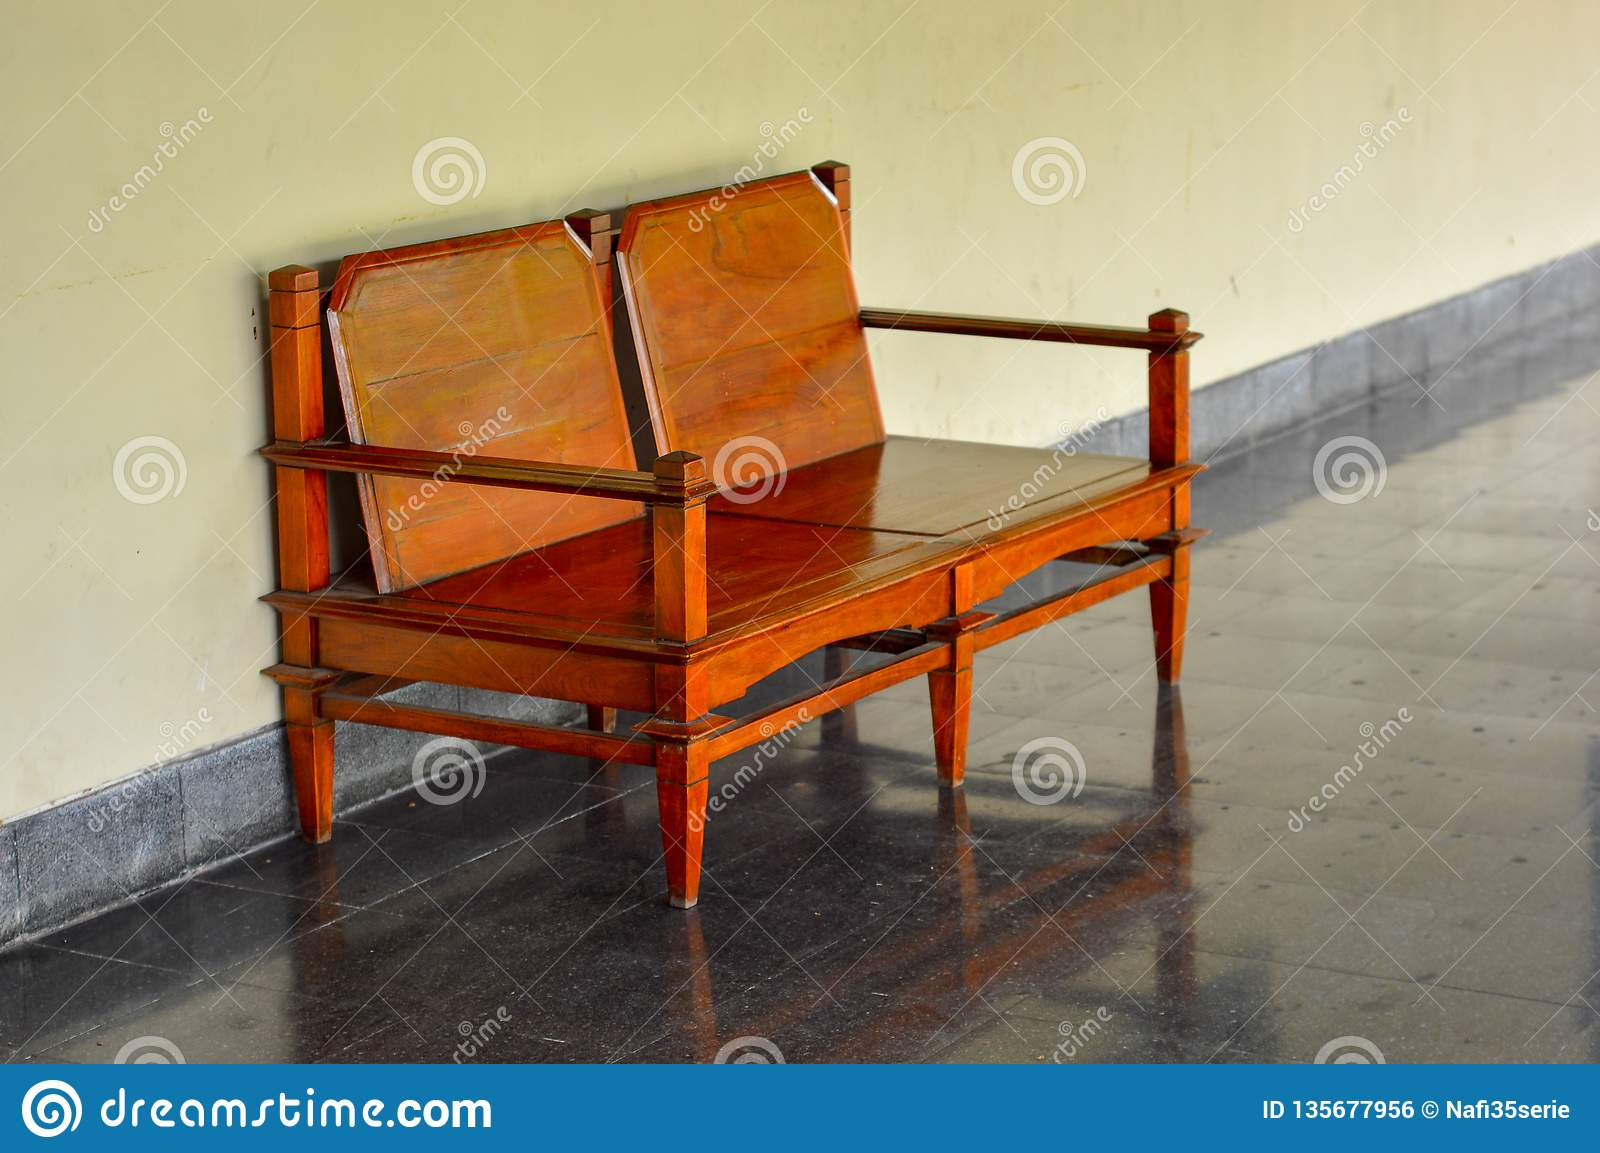 Wooden Chair To Relax In A Historic Building Stock Photo Image Of Modern Table 135677956